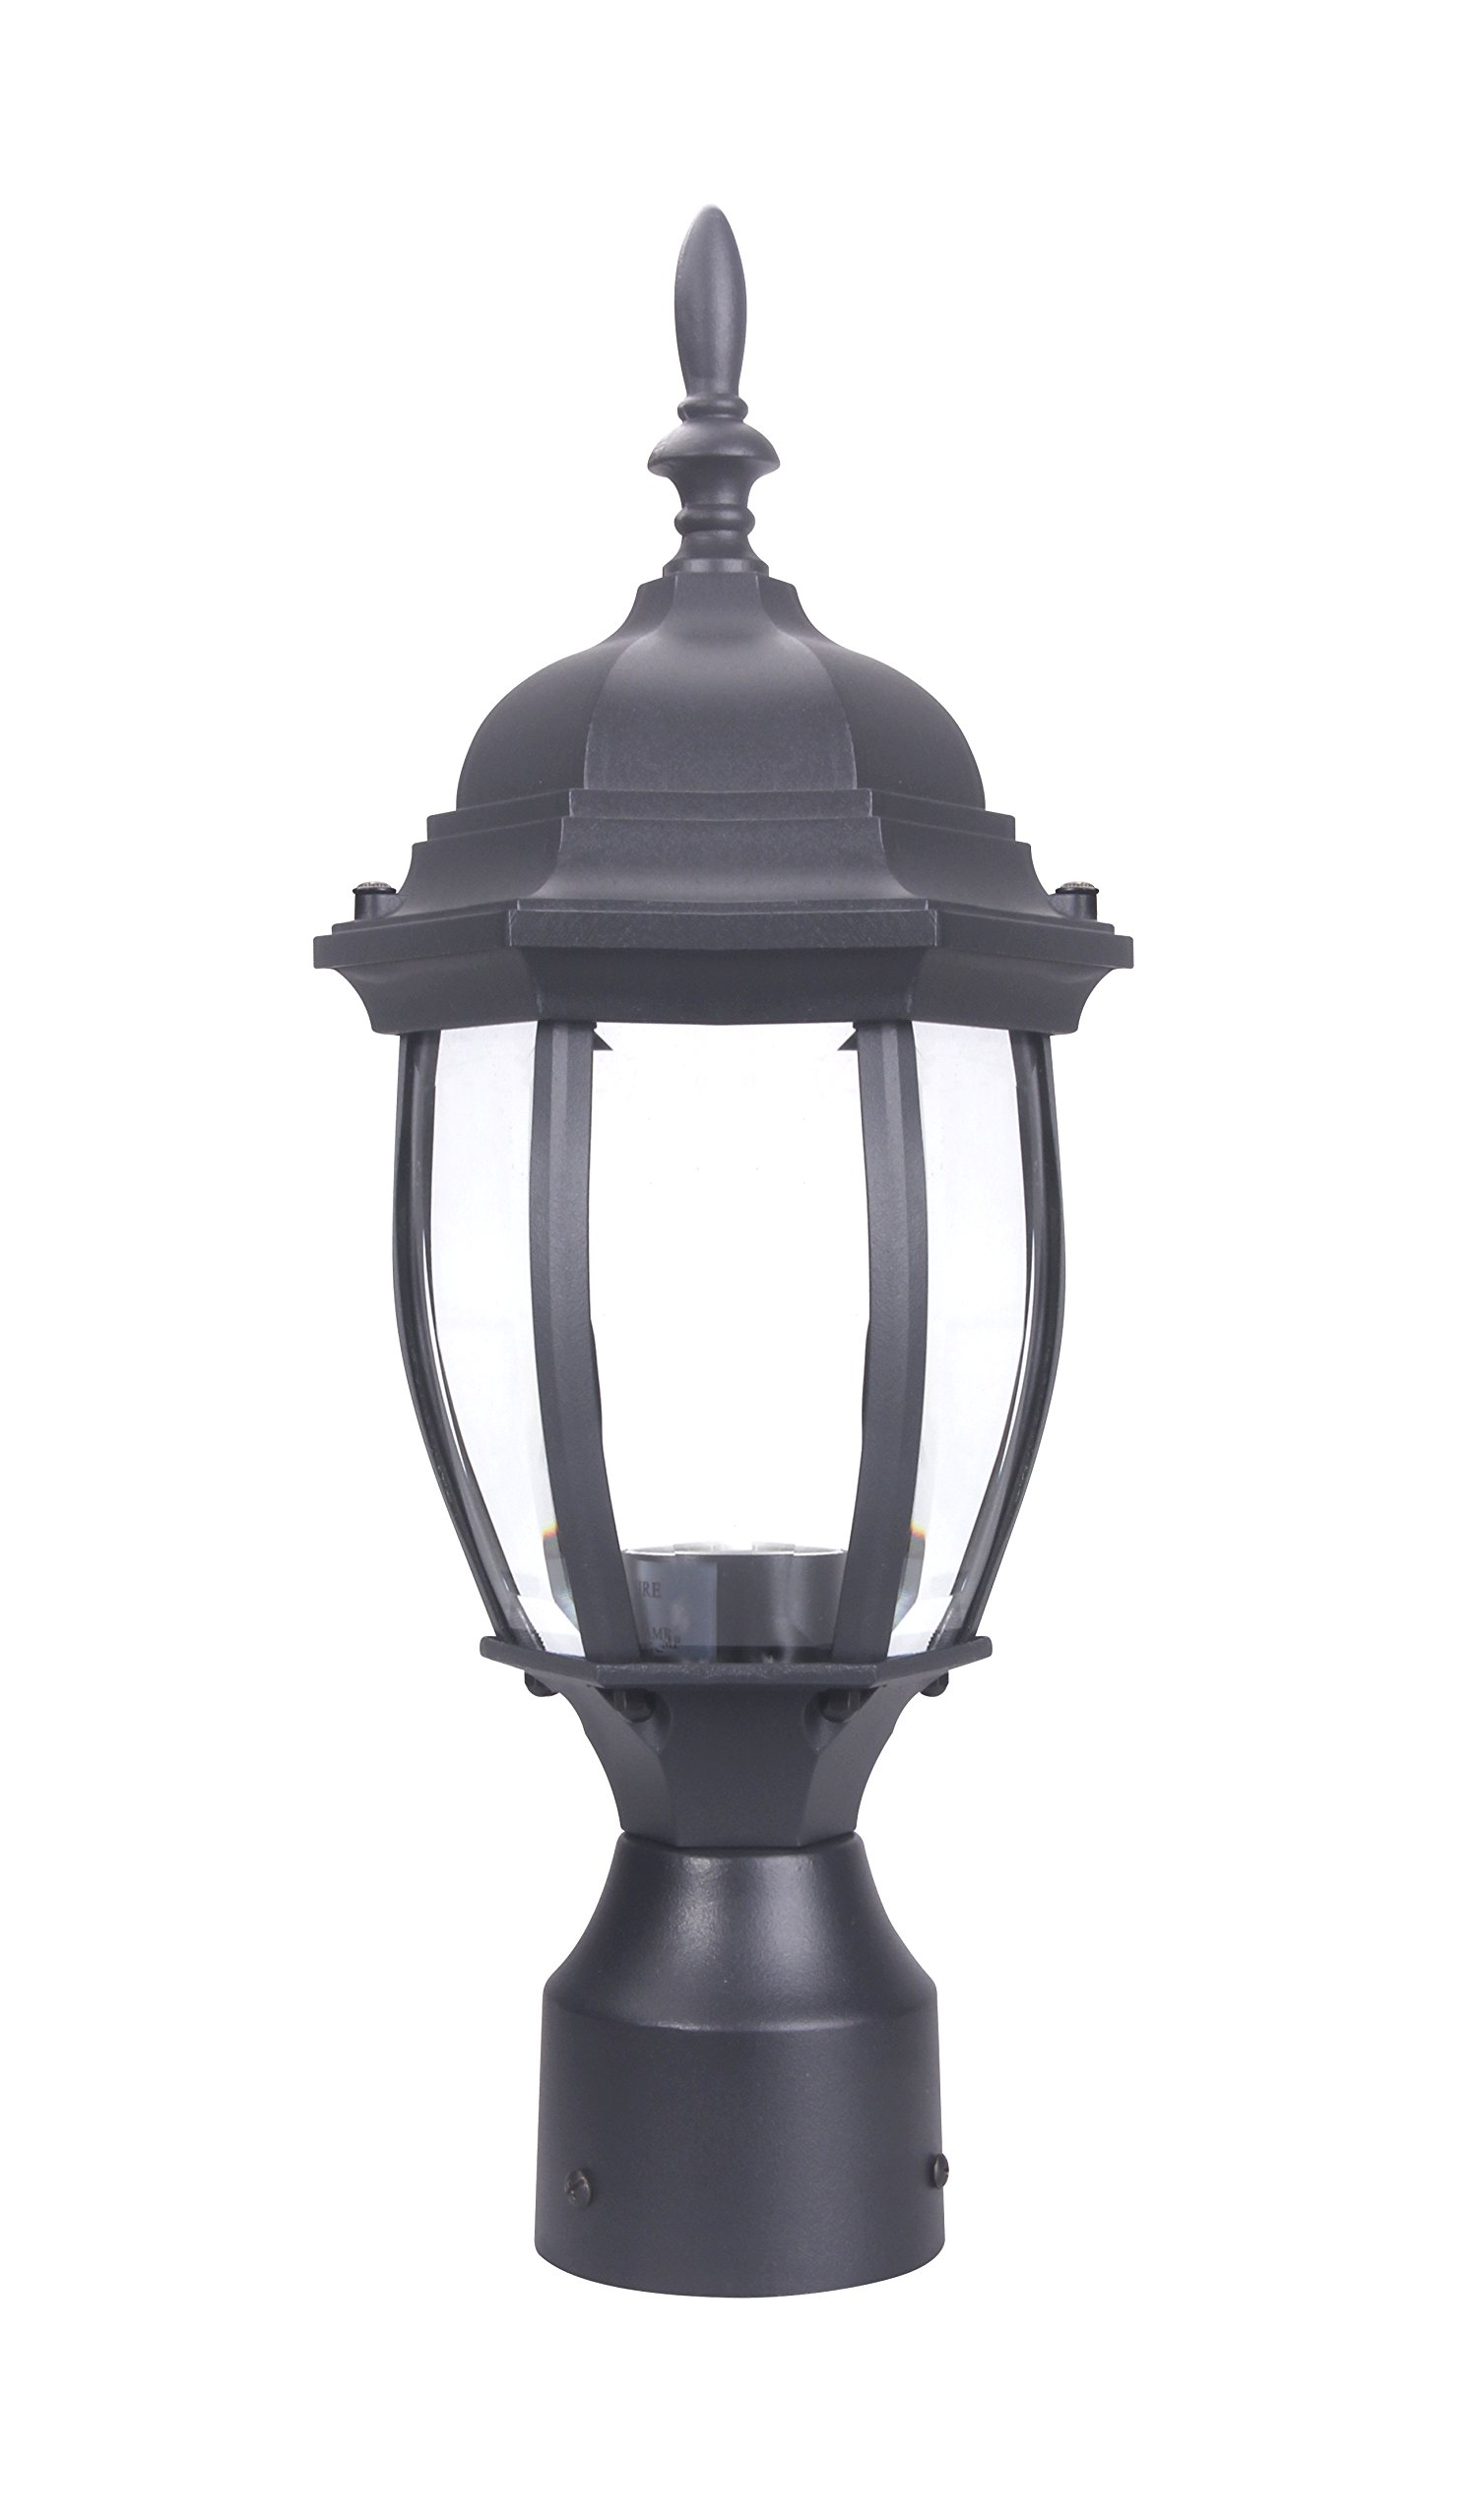 LIT-PaTH Outdoor Post Light Pole Lantern Lighting Fixture with One E26 Base Max 100W, Aluminum Housing Plus Glass, Matte Black Finish (Black) by LIT-PaTH